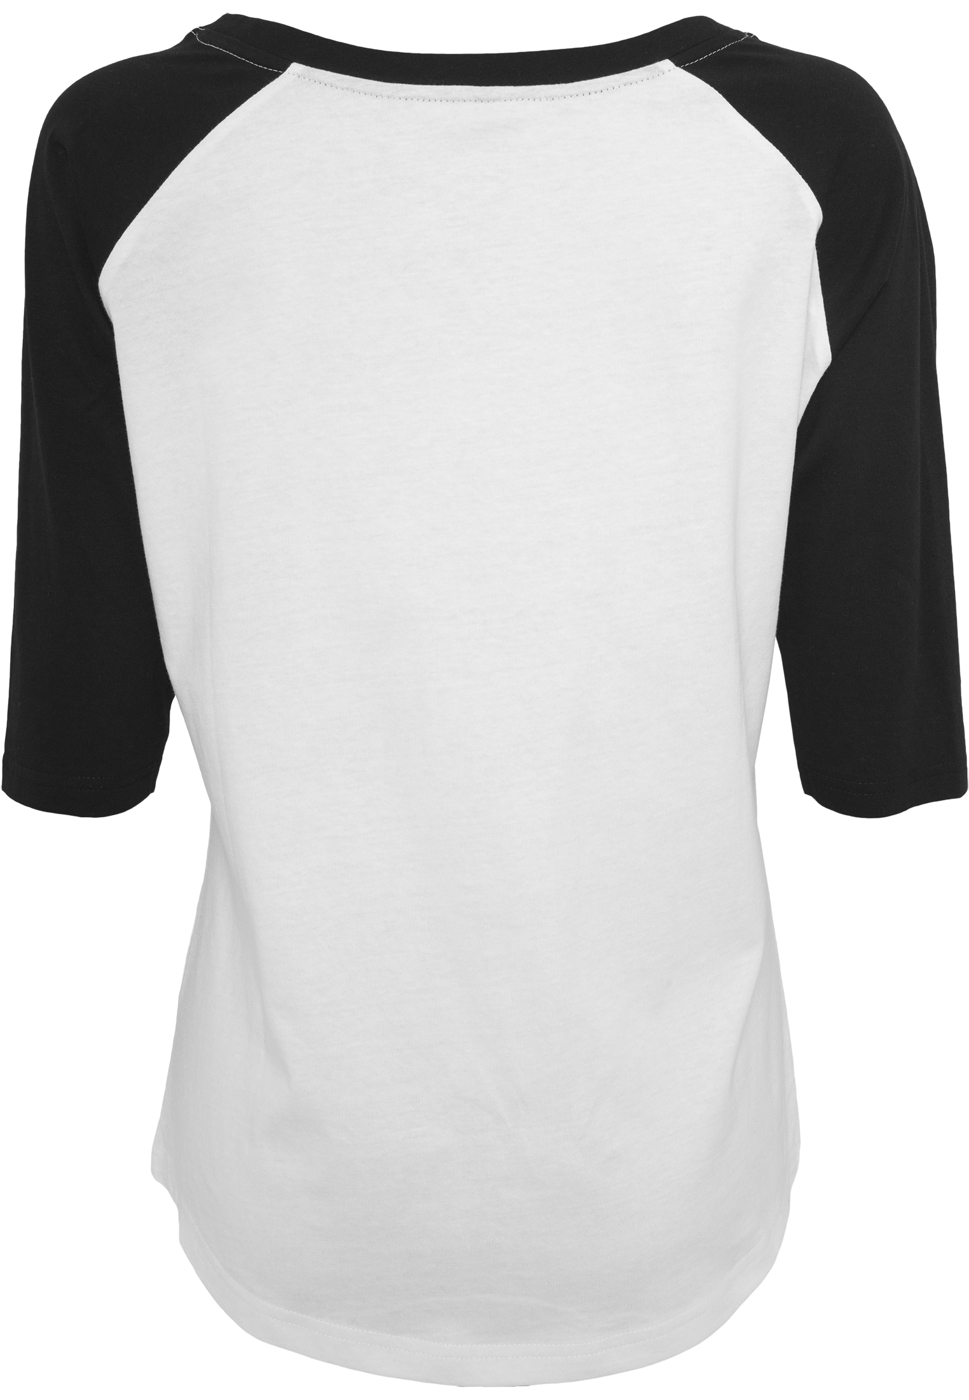 Ladies Ramones Circle Raglan Tee - white/black